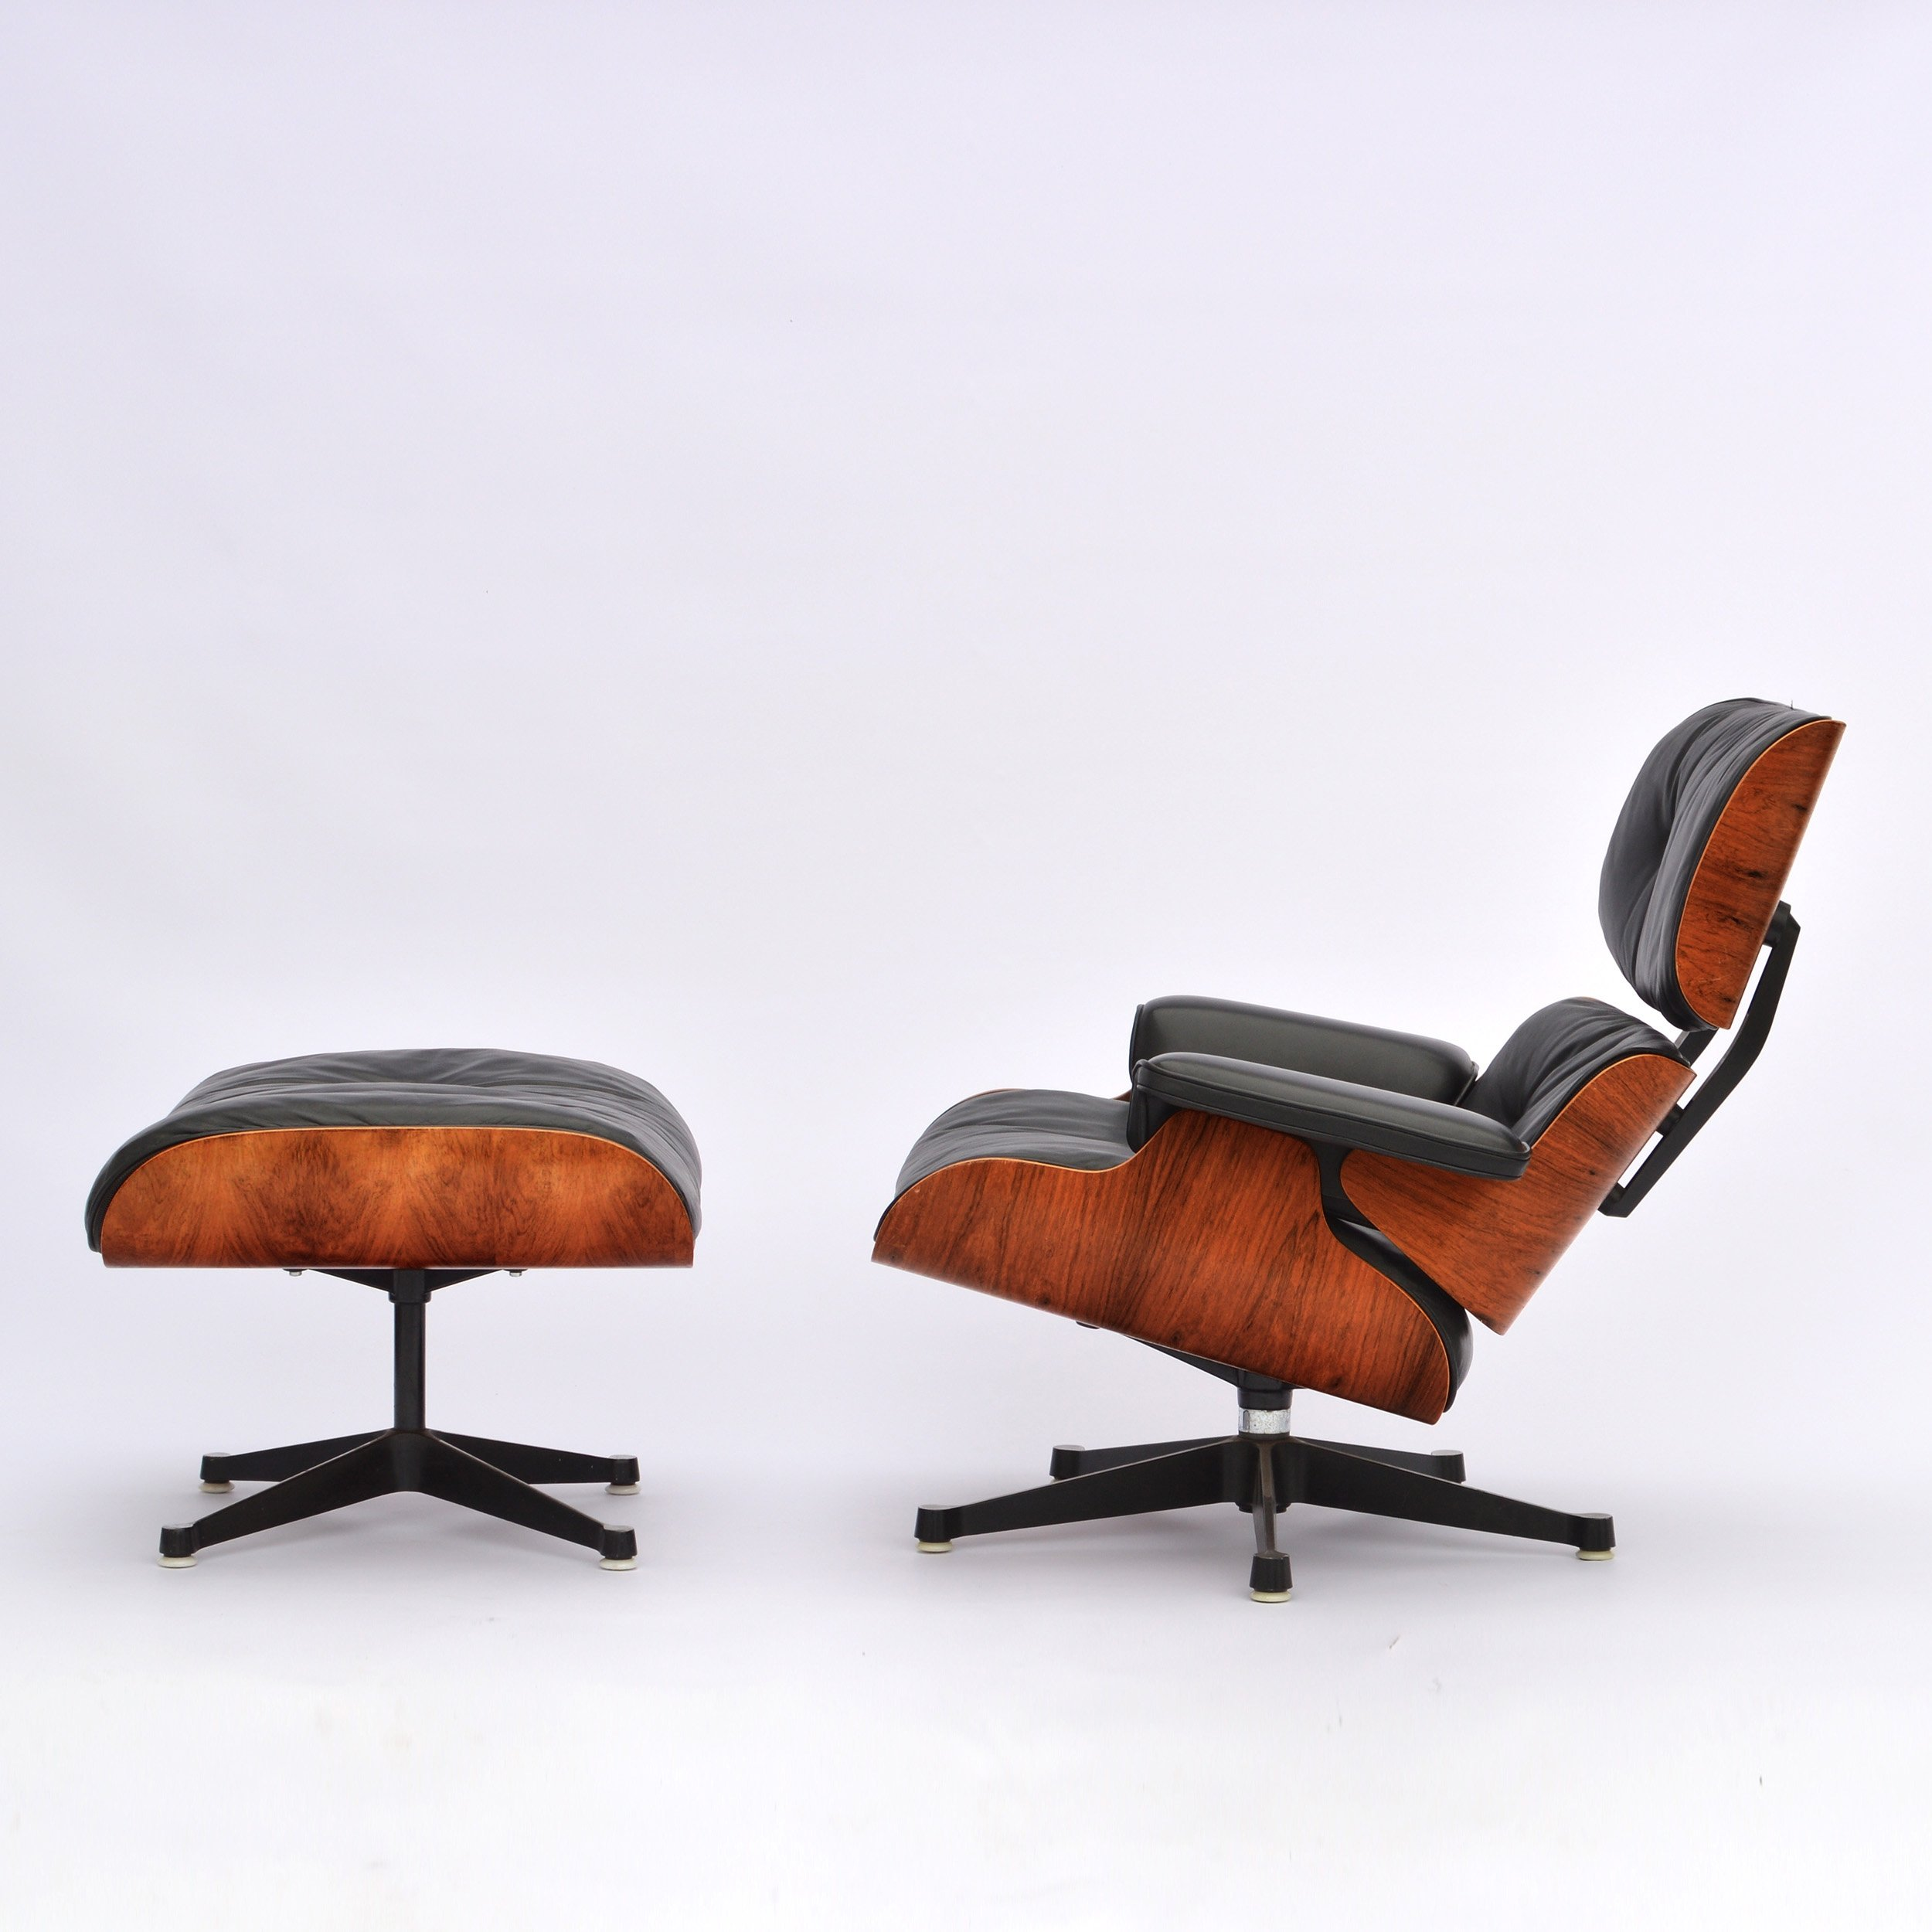 b5ee18fb09c Eames Lounge Chair + Ottoman in Rosewood   Duck Down Cushions by Herman  Miller